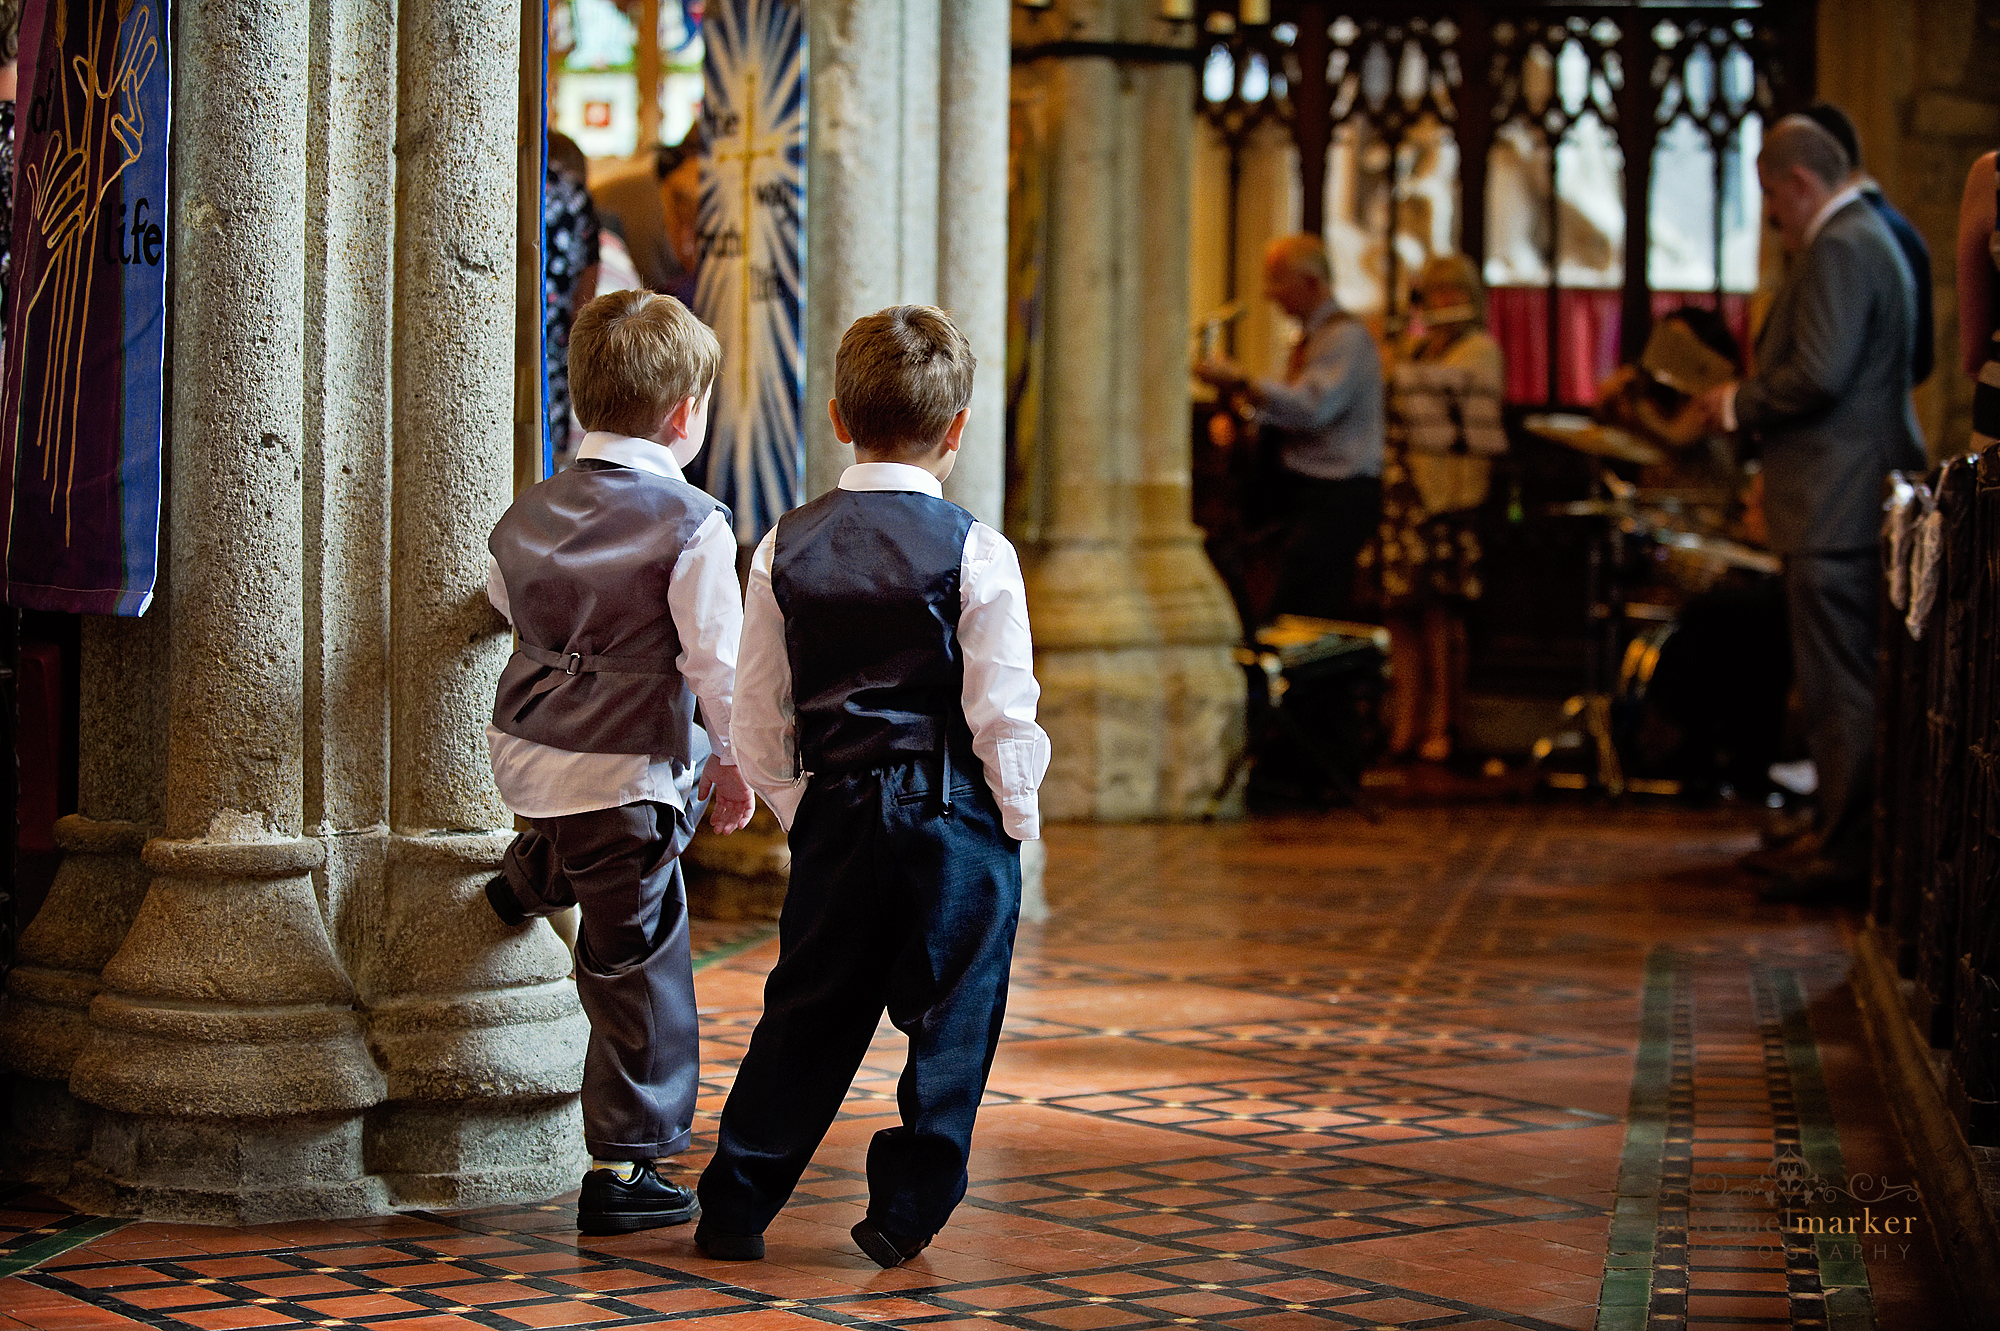 Milton Combe church wedding ushers looking on